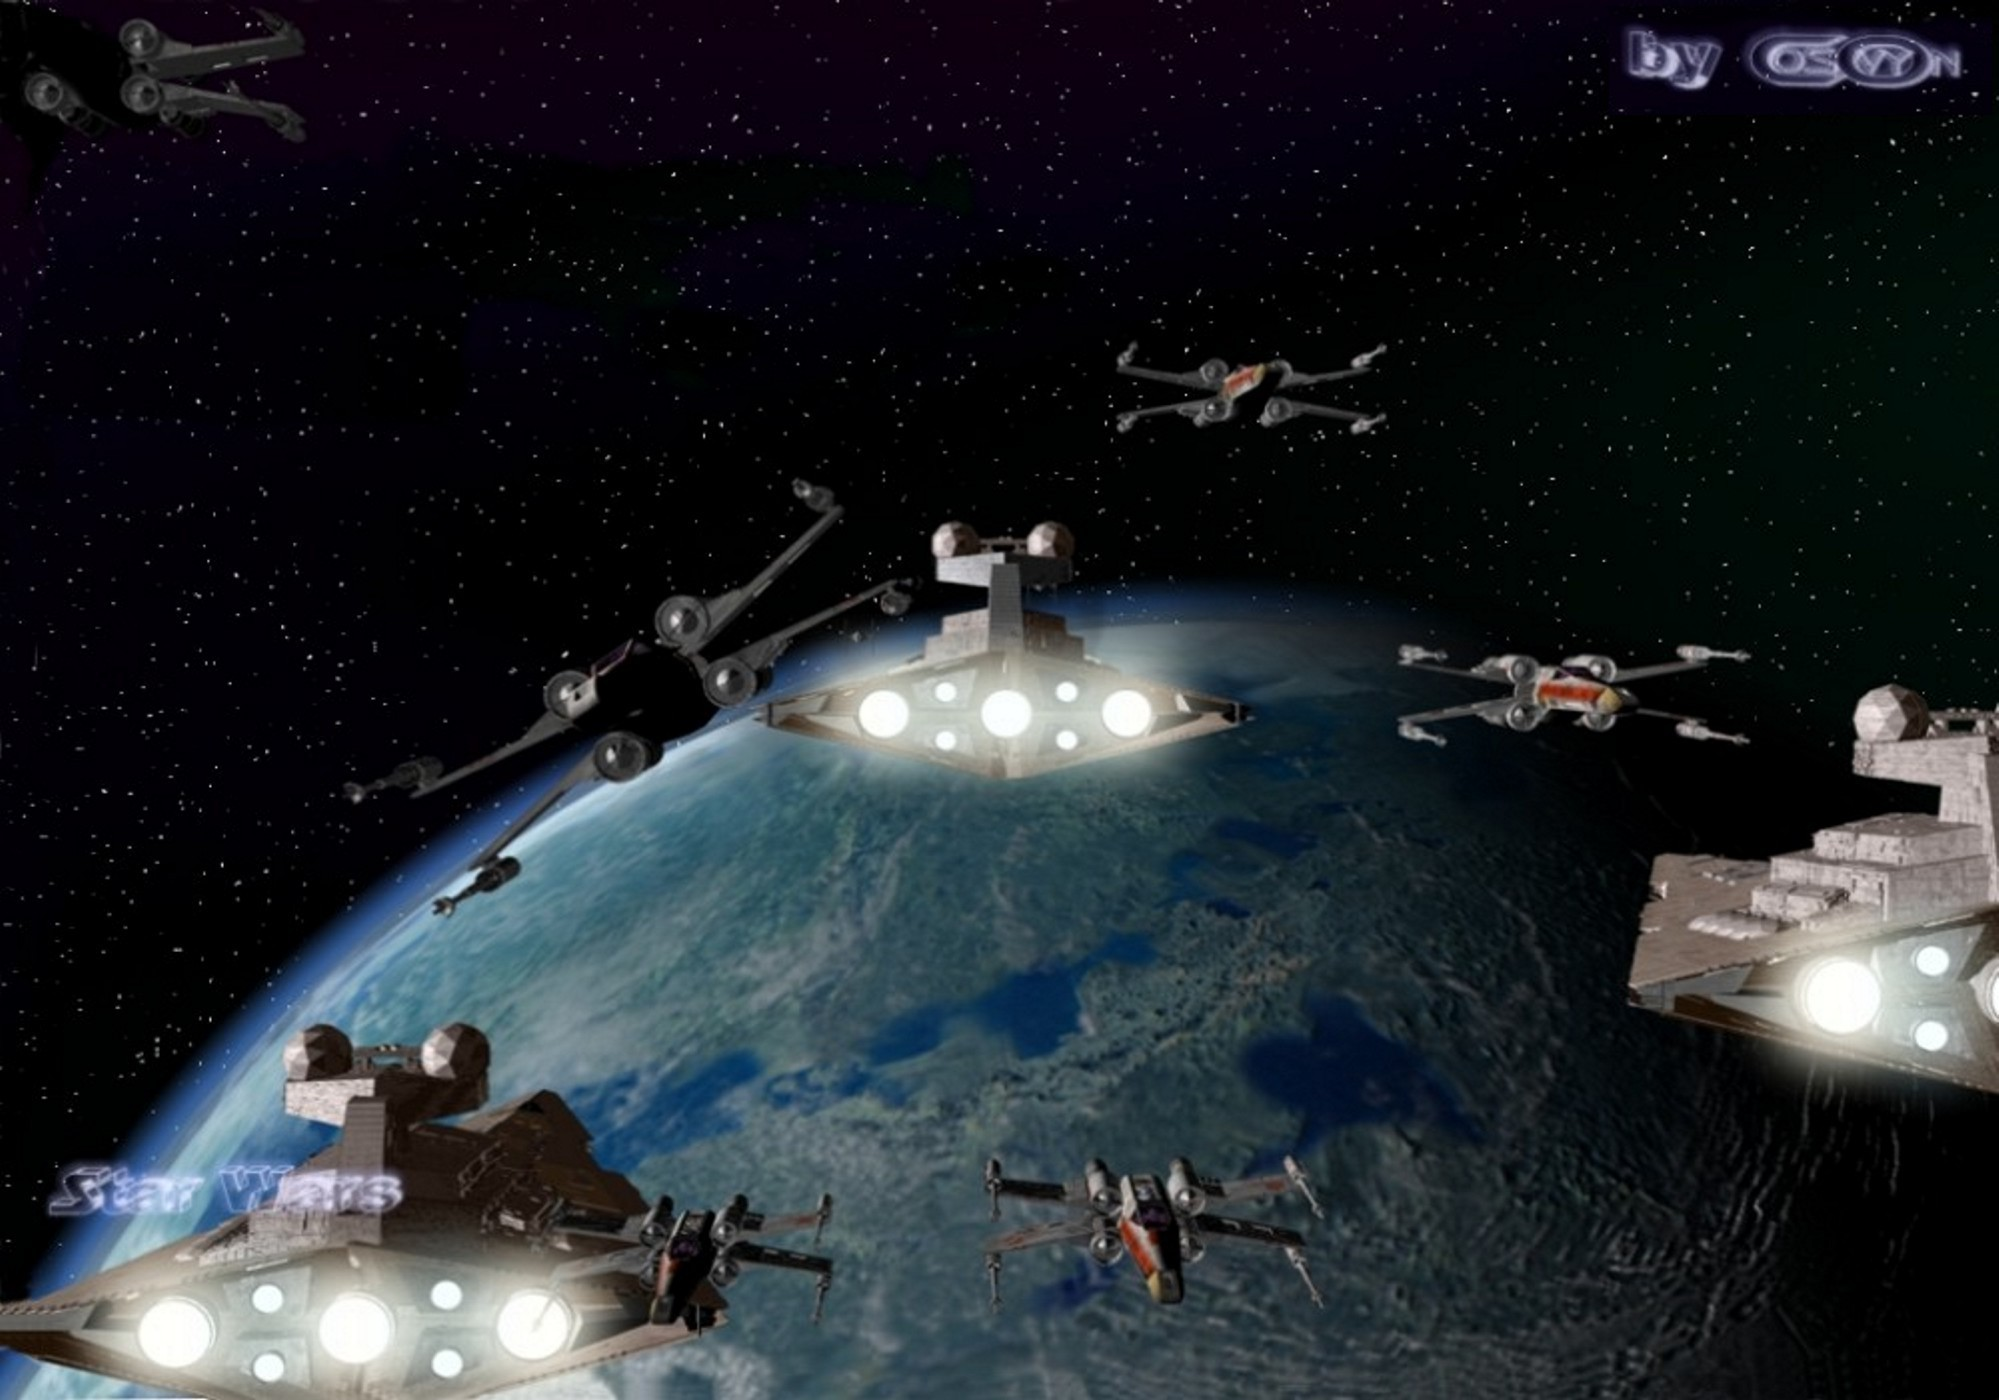 Star Wars Space Background Download Free Amazing Hd Backgrounds